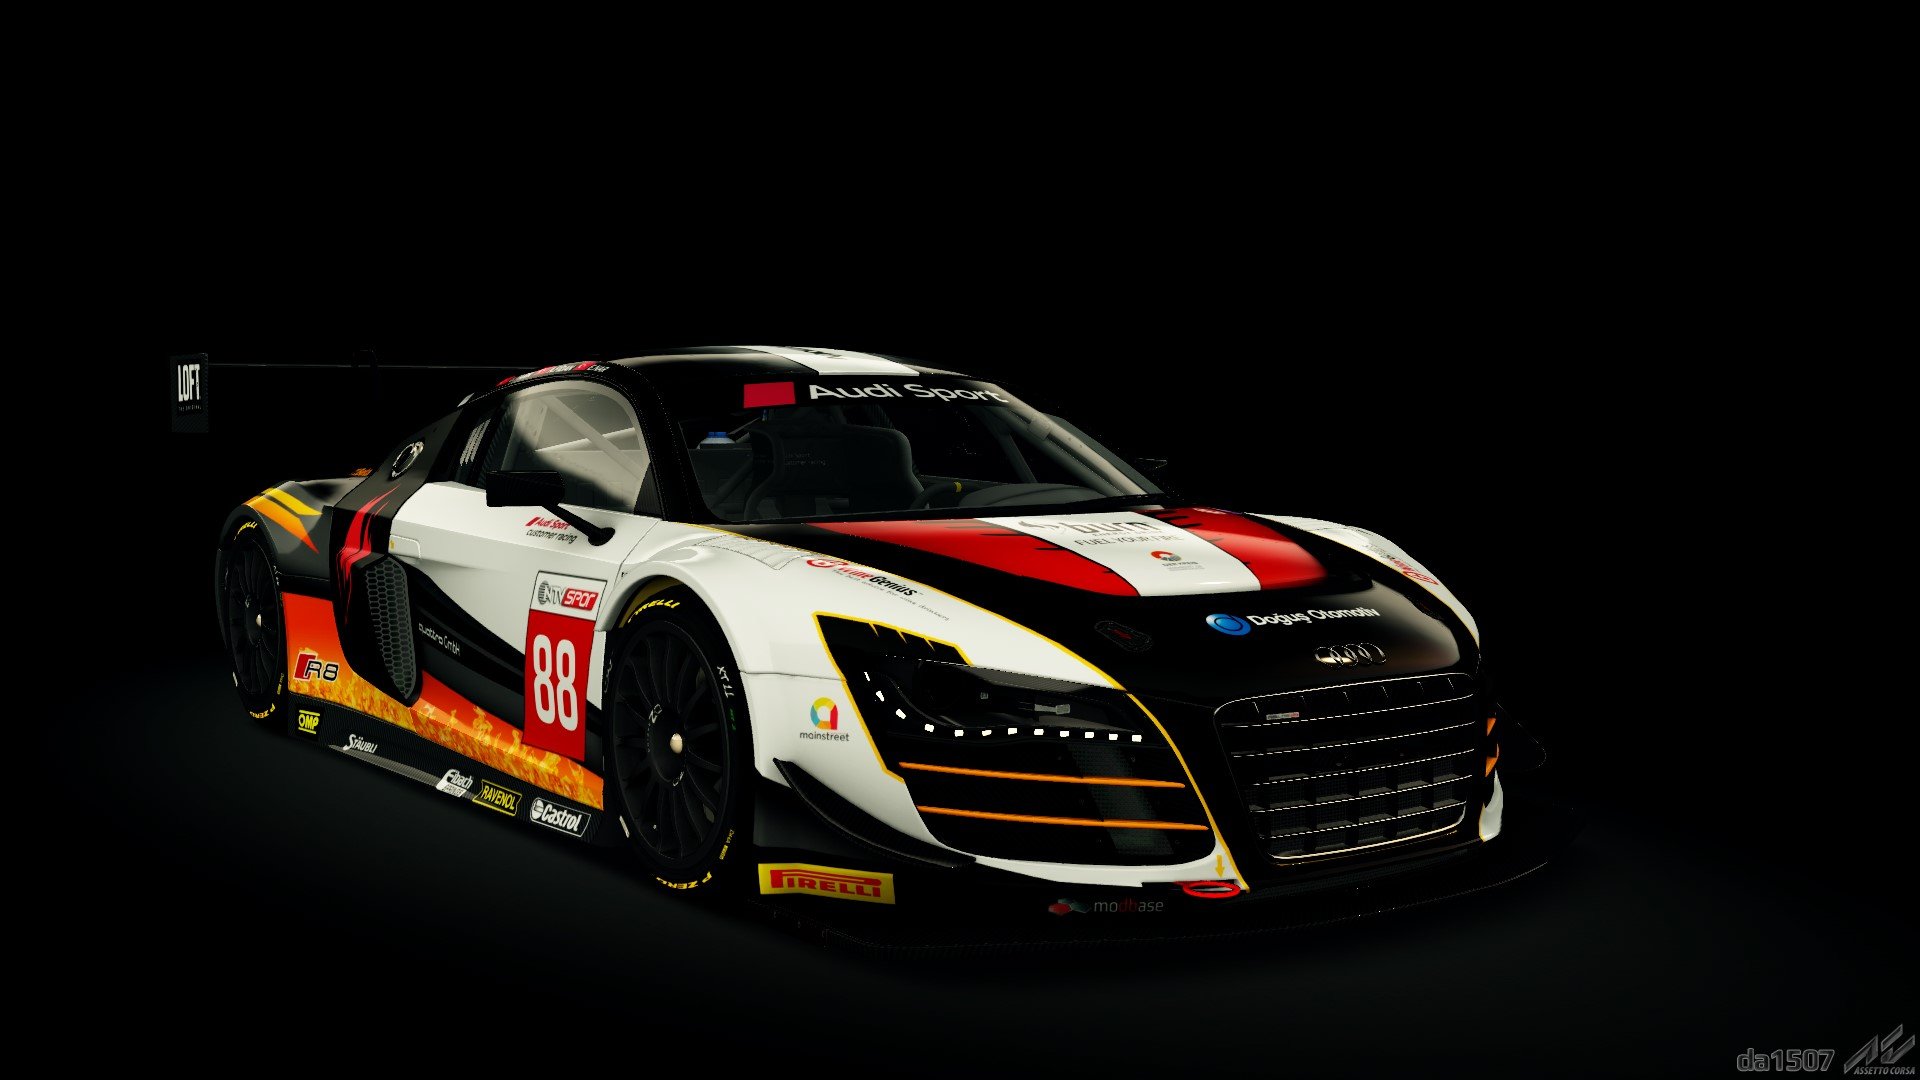 Showroom_ks_audi_r8_lms_19-10-2015-14-35-8.jpg